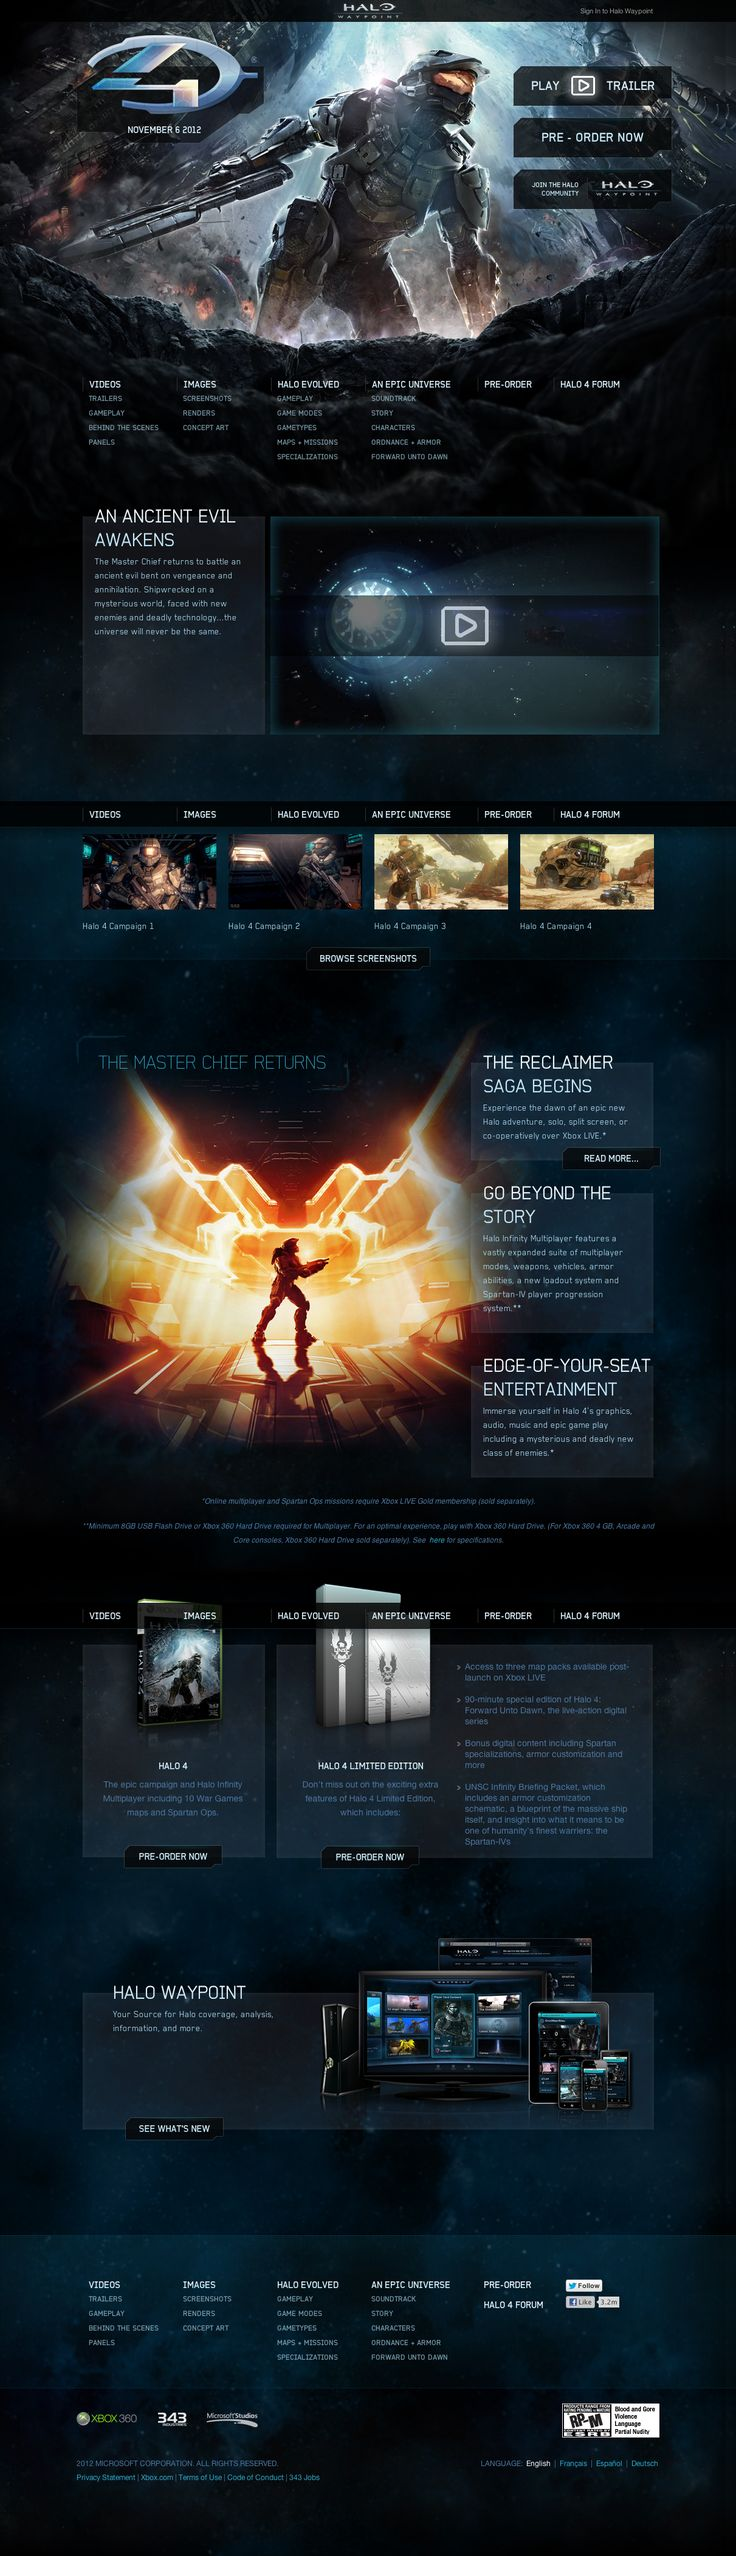 http://halo.xbox.com via @url2pin